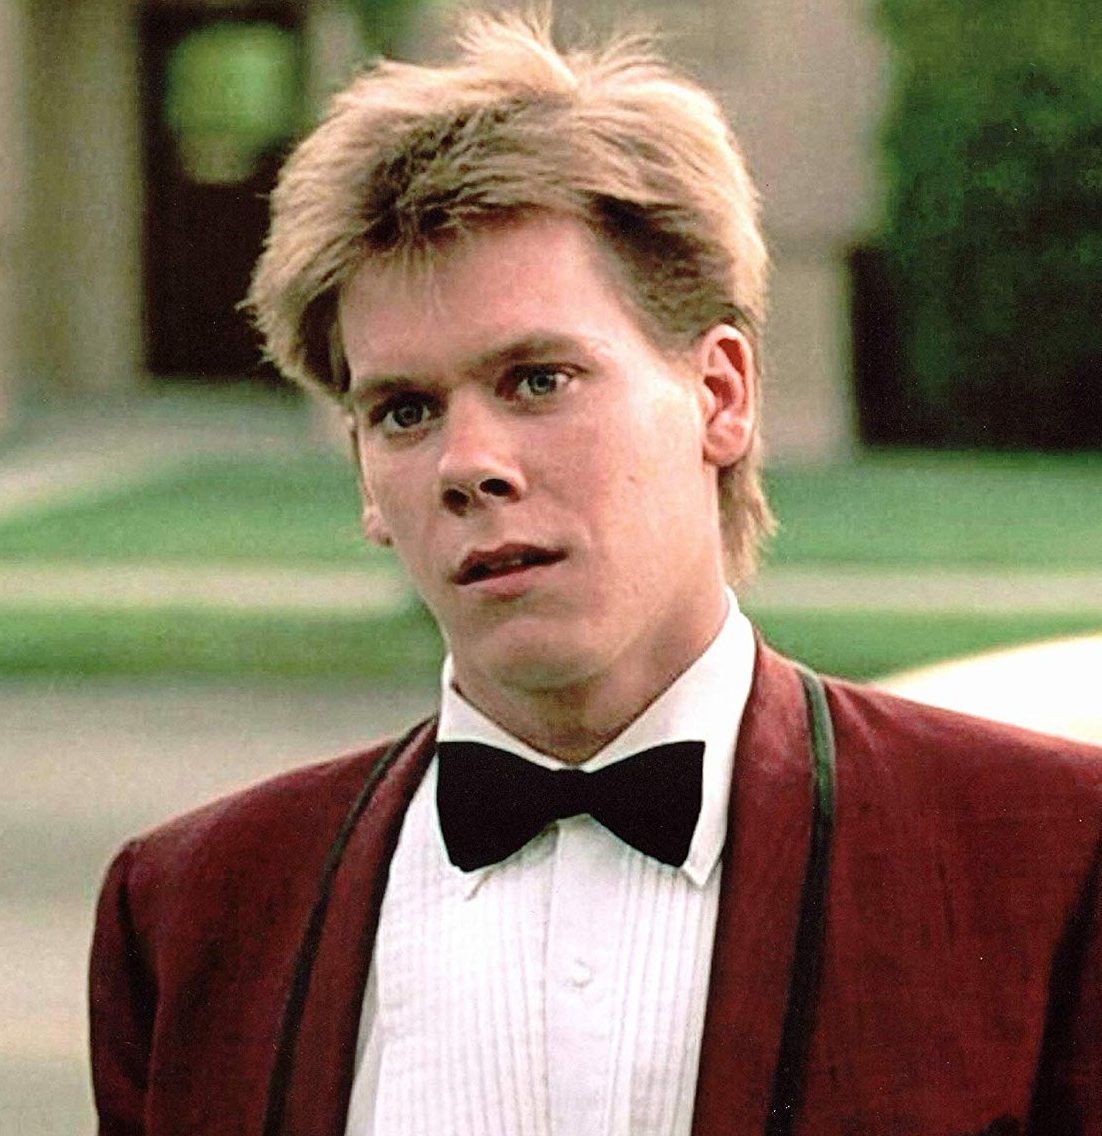 811G8gMim2L. AC SL1500 e1583320499144 Kick Off Your Sunday Shoes With 20 Facts About Footloose